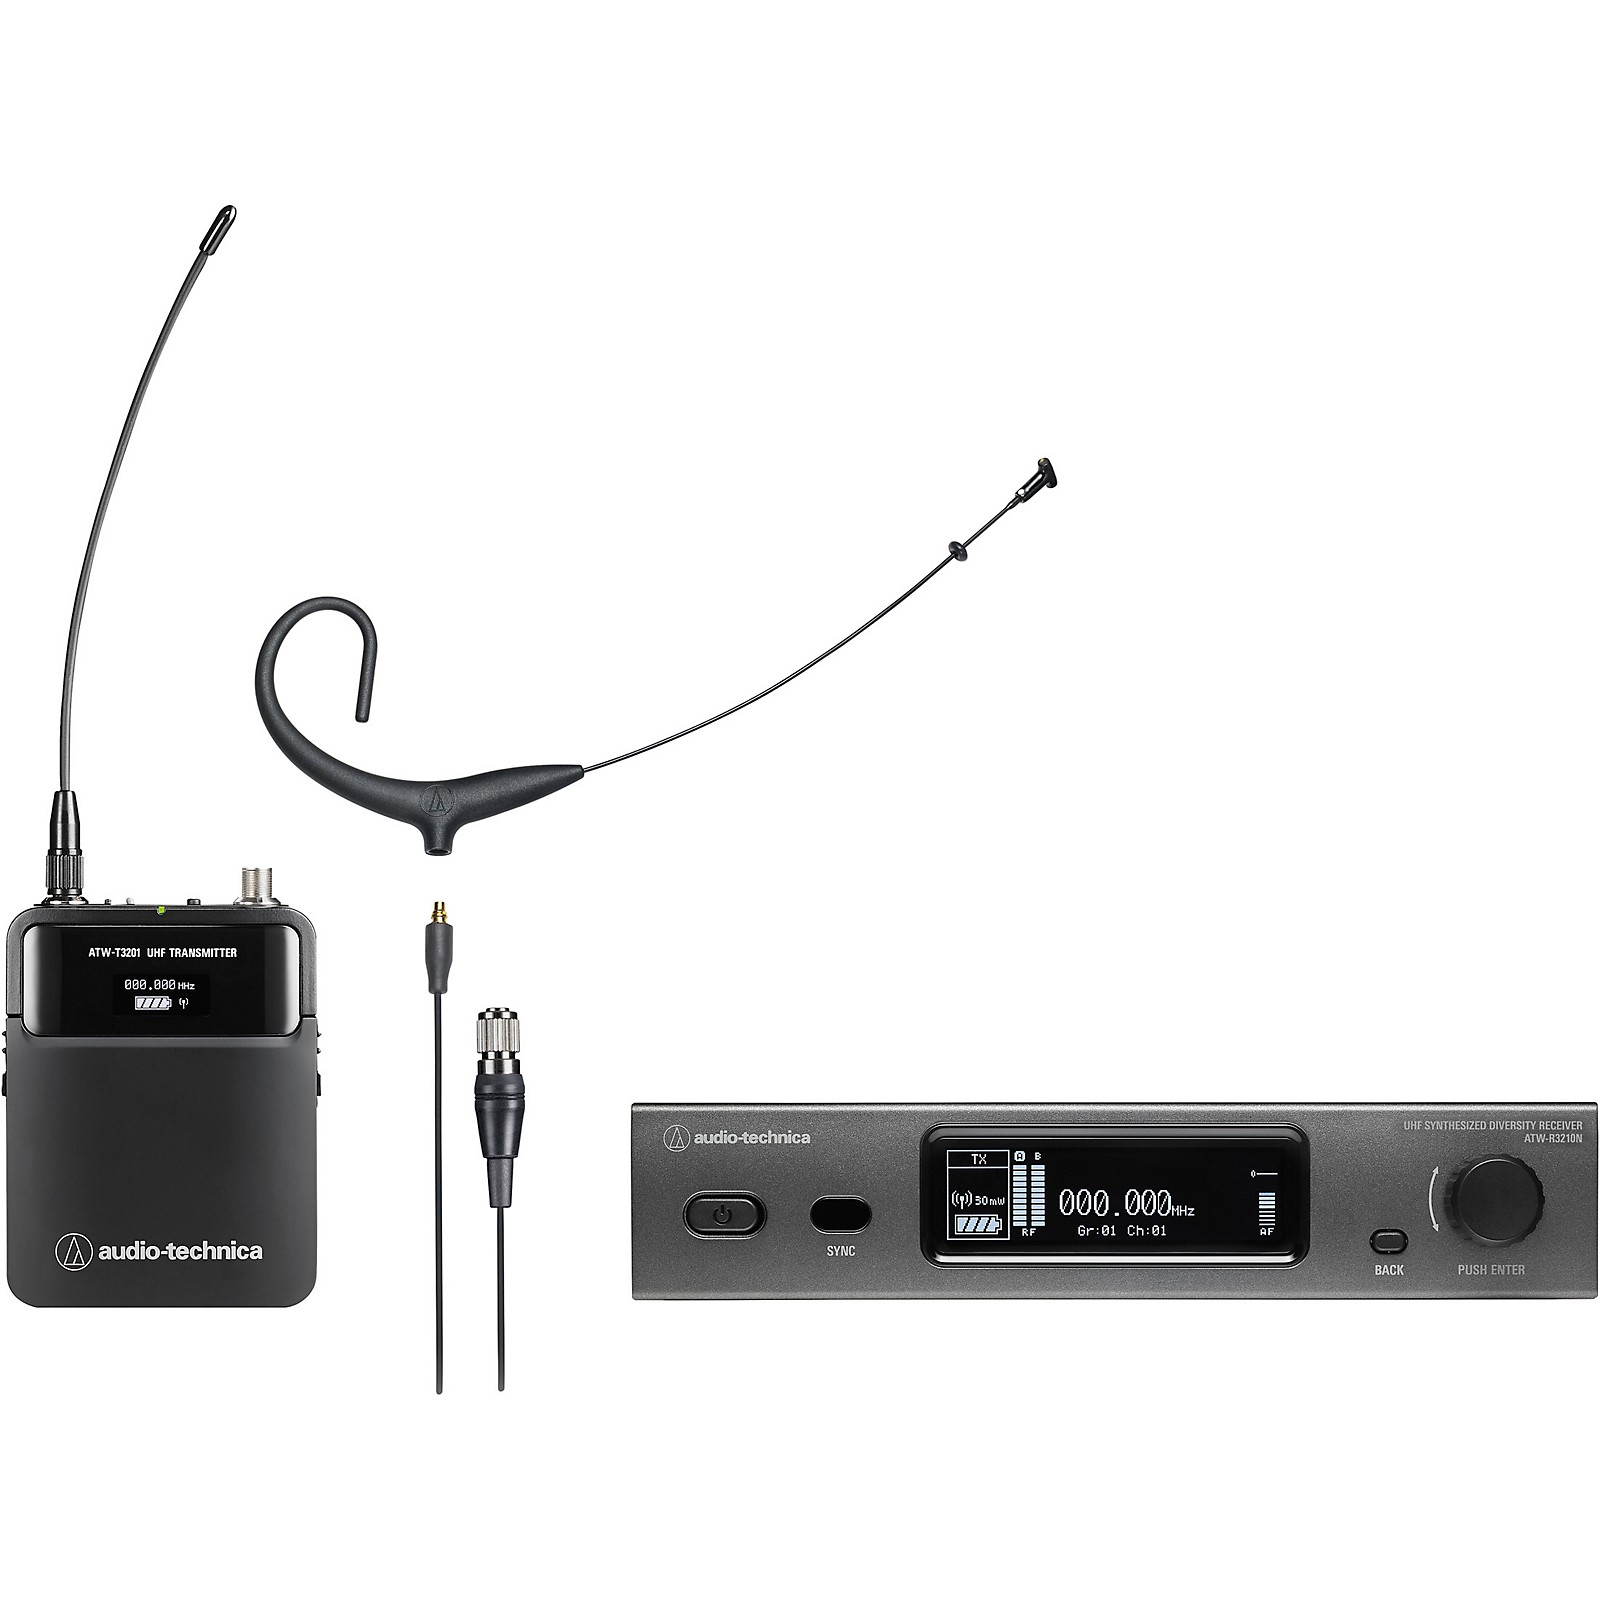 Audio-Technica 3000 Series (4th Gen) Network Enabled UHF Wireless with BP894xcH MicroSet Cardioid Condenser Headworn Microphone